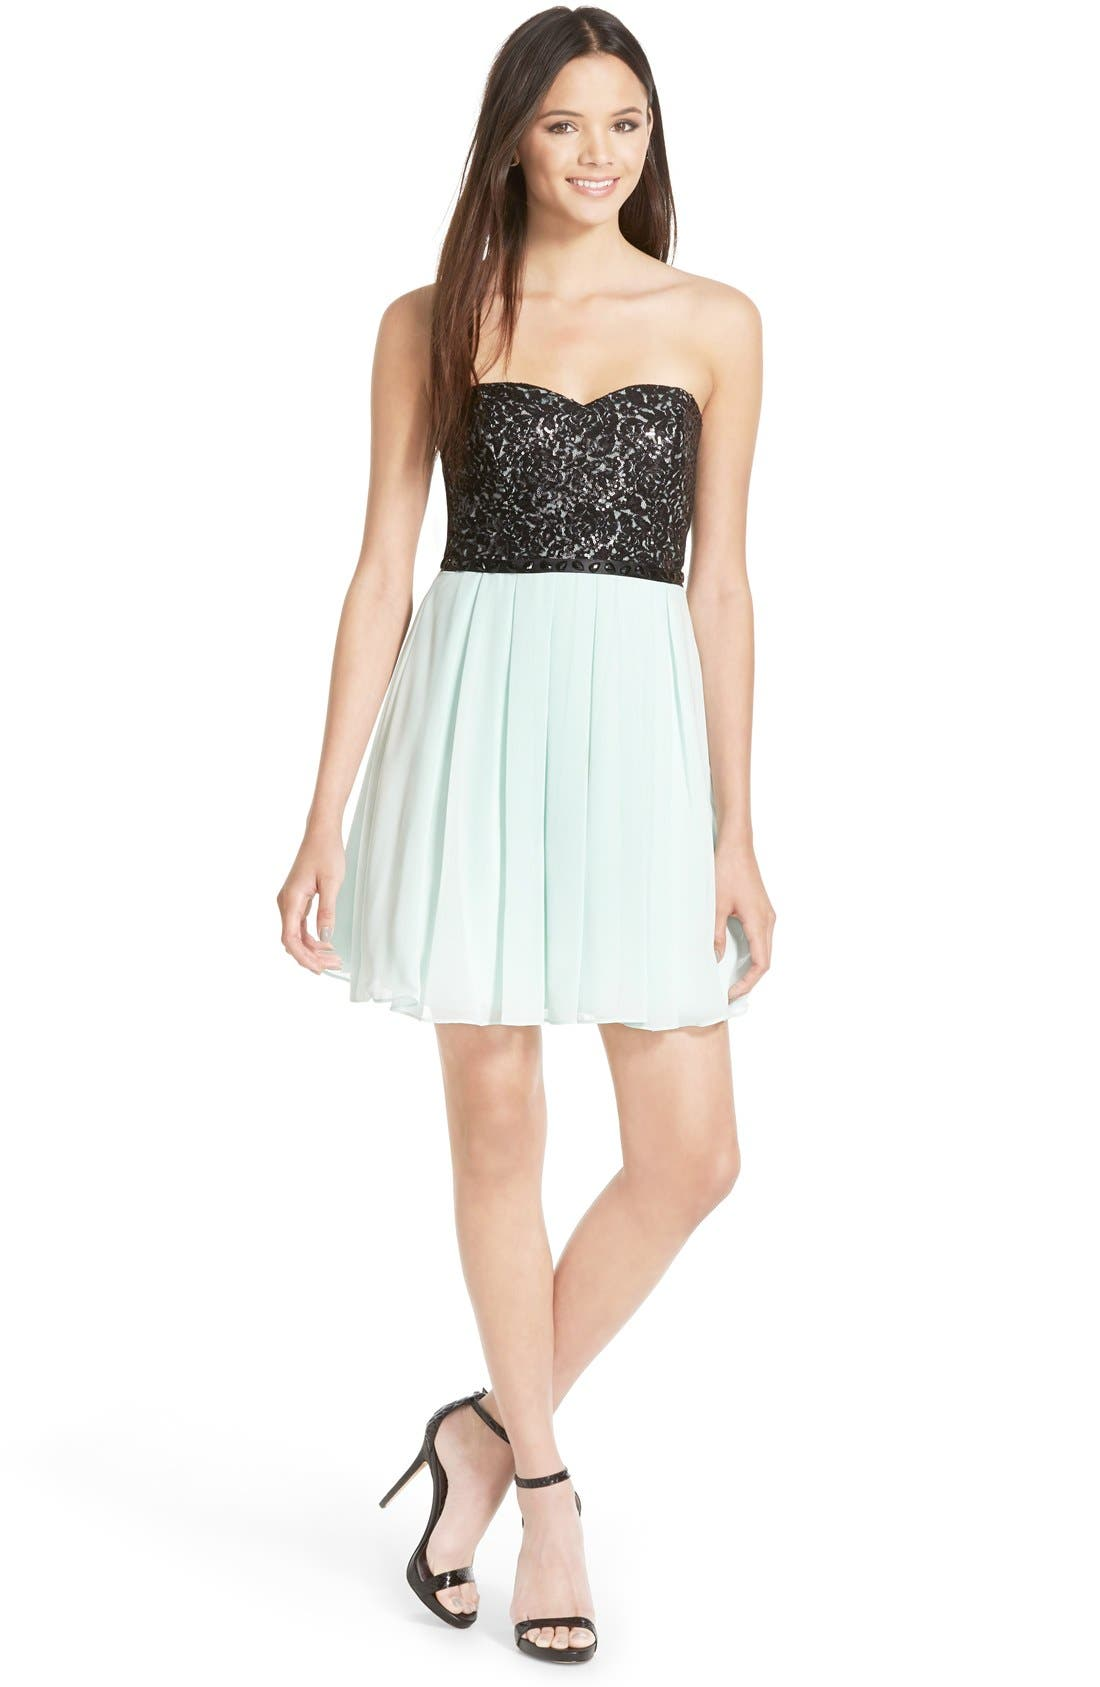 Main Image - Sequin Hearts Strapless Lace Bodice Skater Dress